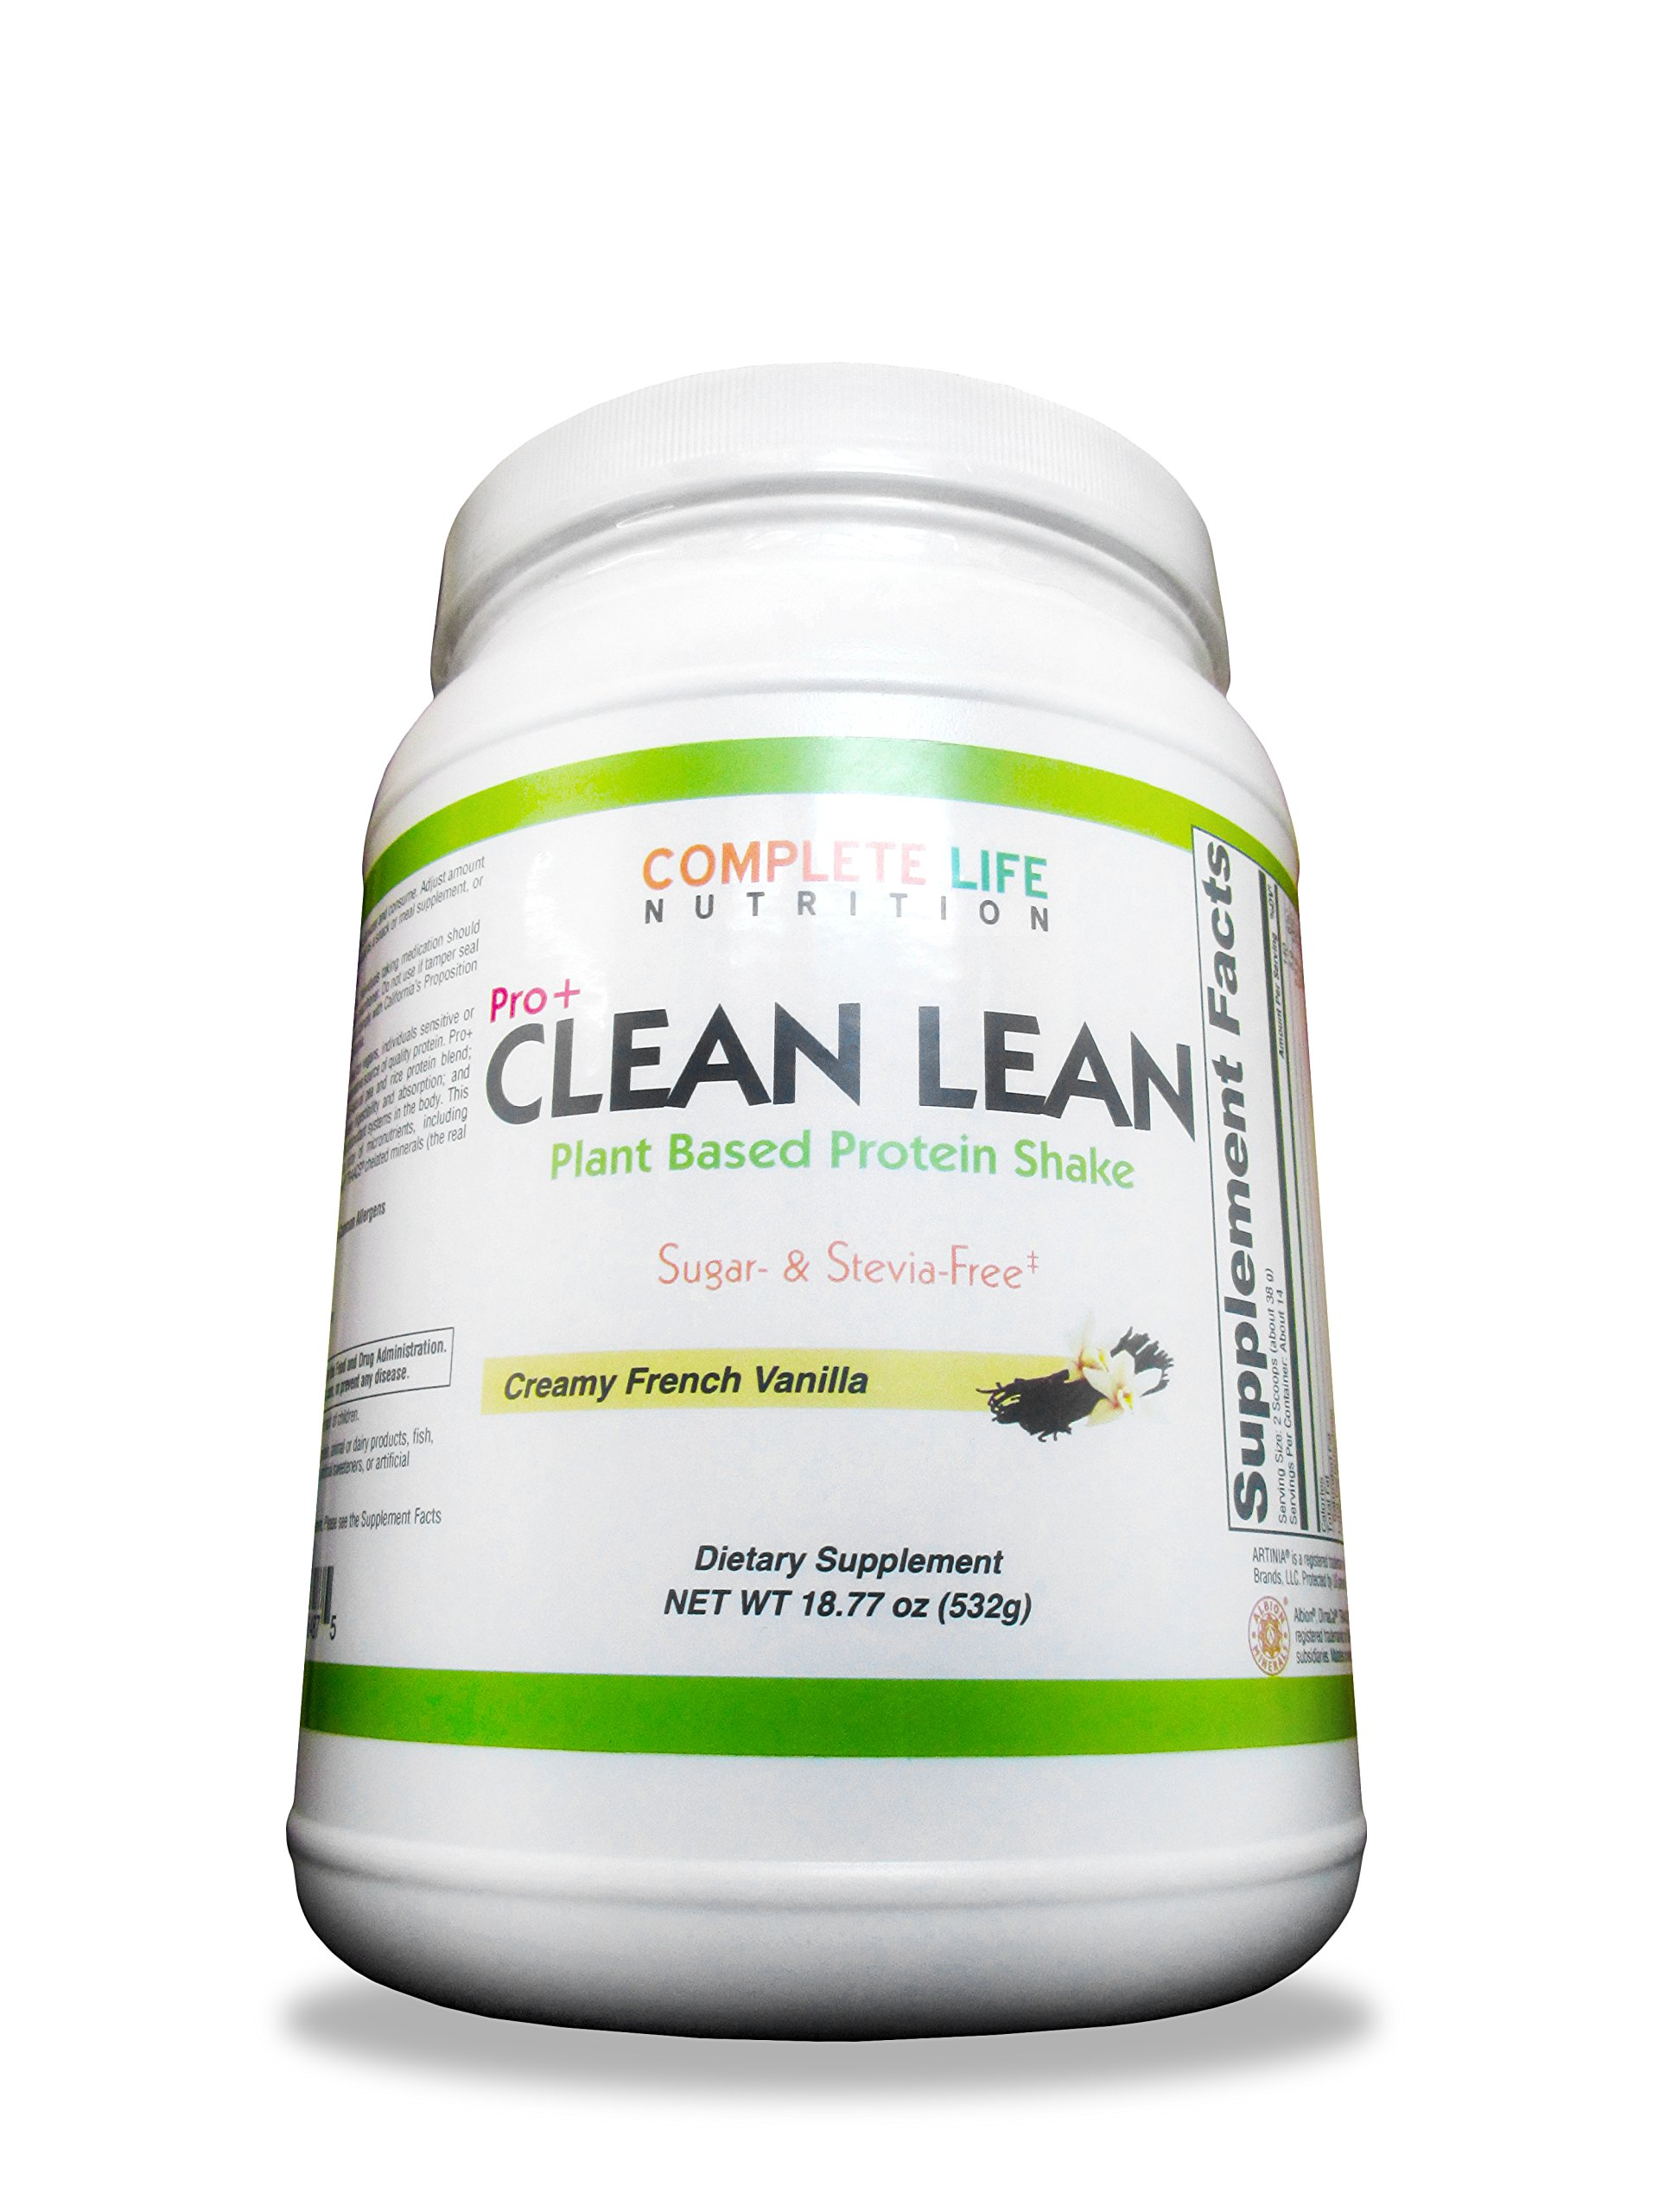 Clean Lean Vanilla Weight Loss Shake by Complete Life Nutrition - Natural Herbal and Vitamin Pea Protein Meal Replacement and Cleanse Shake - Low Carb - Use Daily For Healthy Women, Men, Diabetic